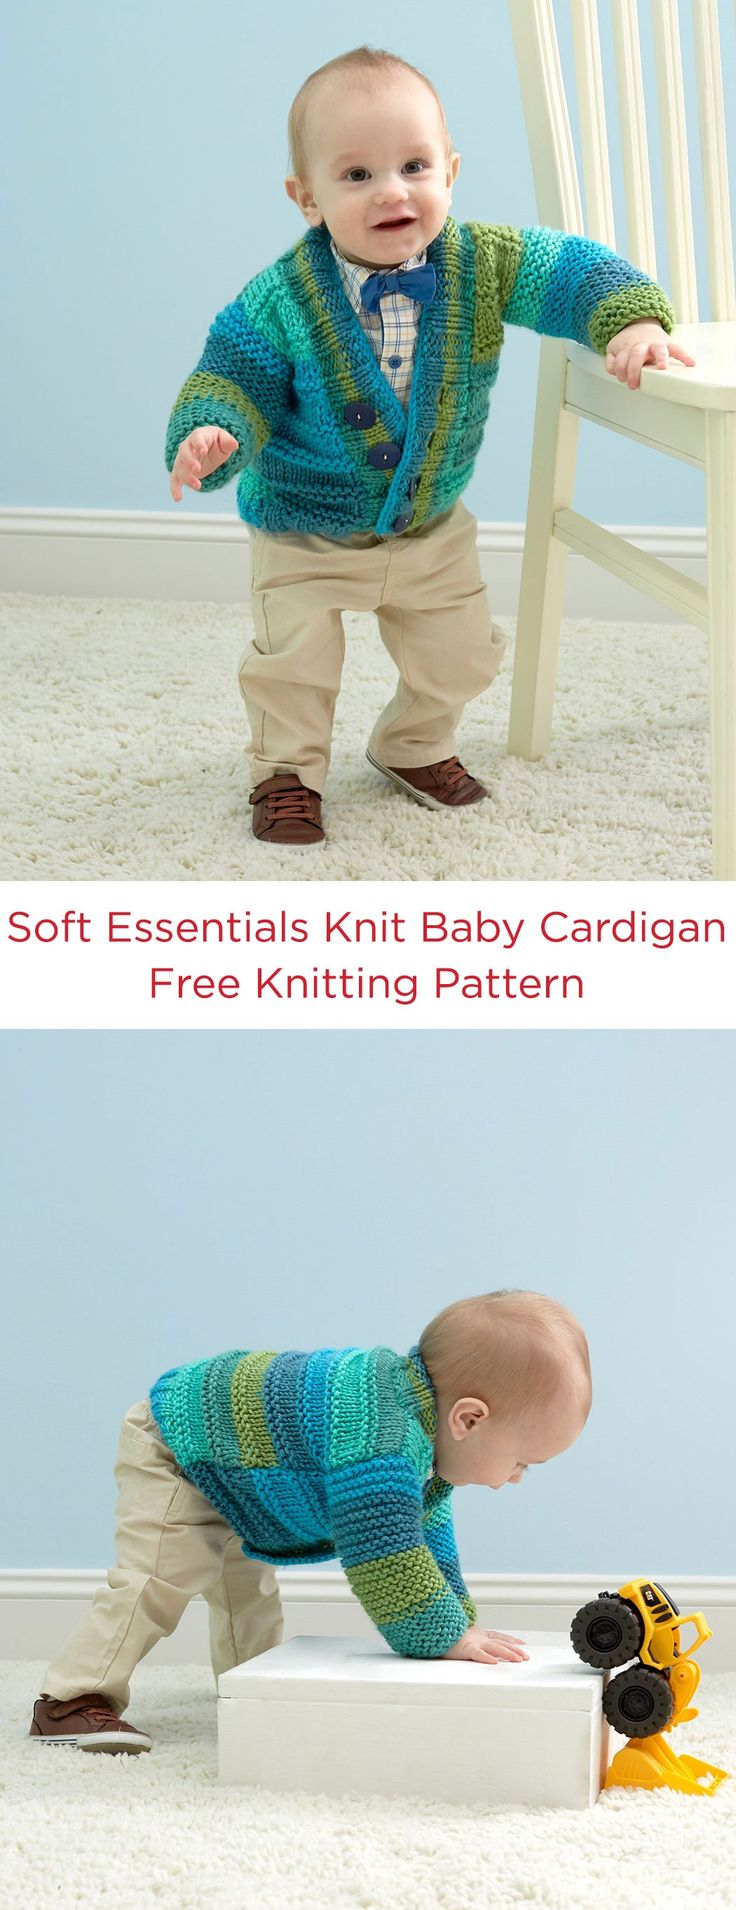 Knitting Essentials For Baby : Best red heart soft essentials yarn at michaels images